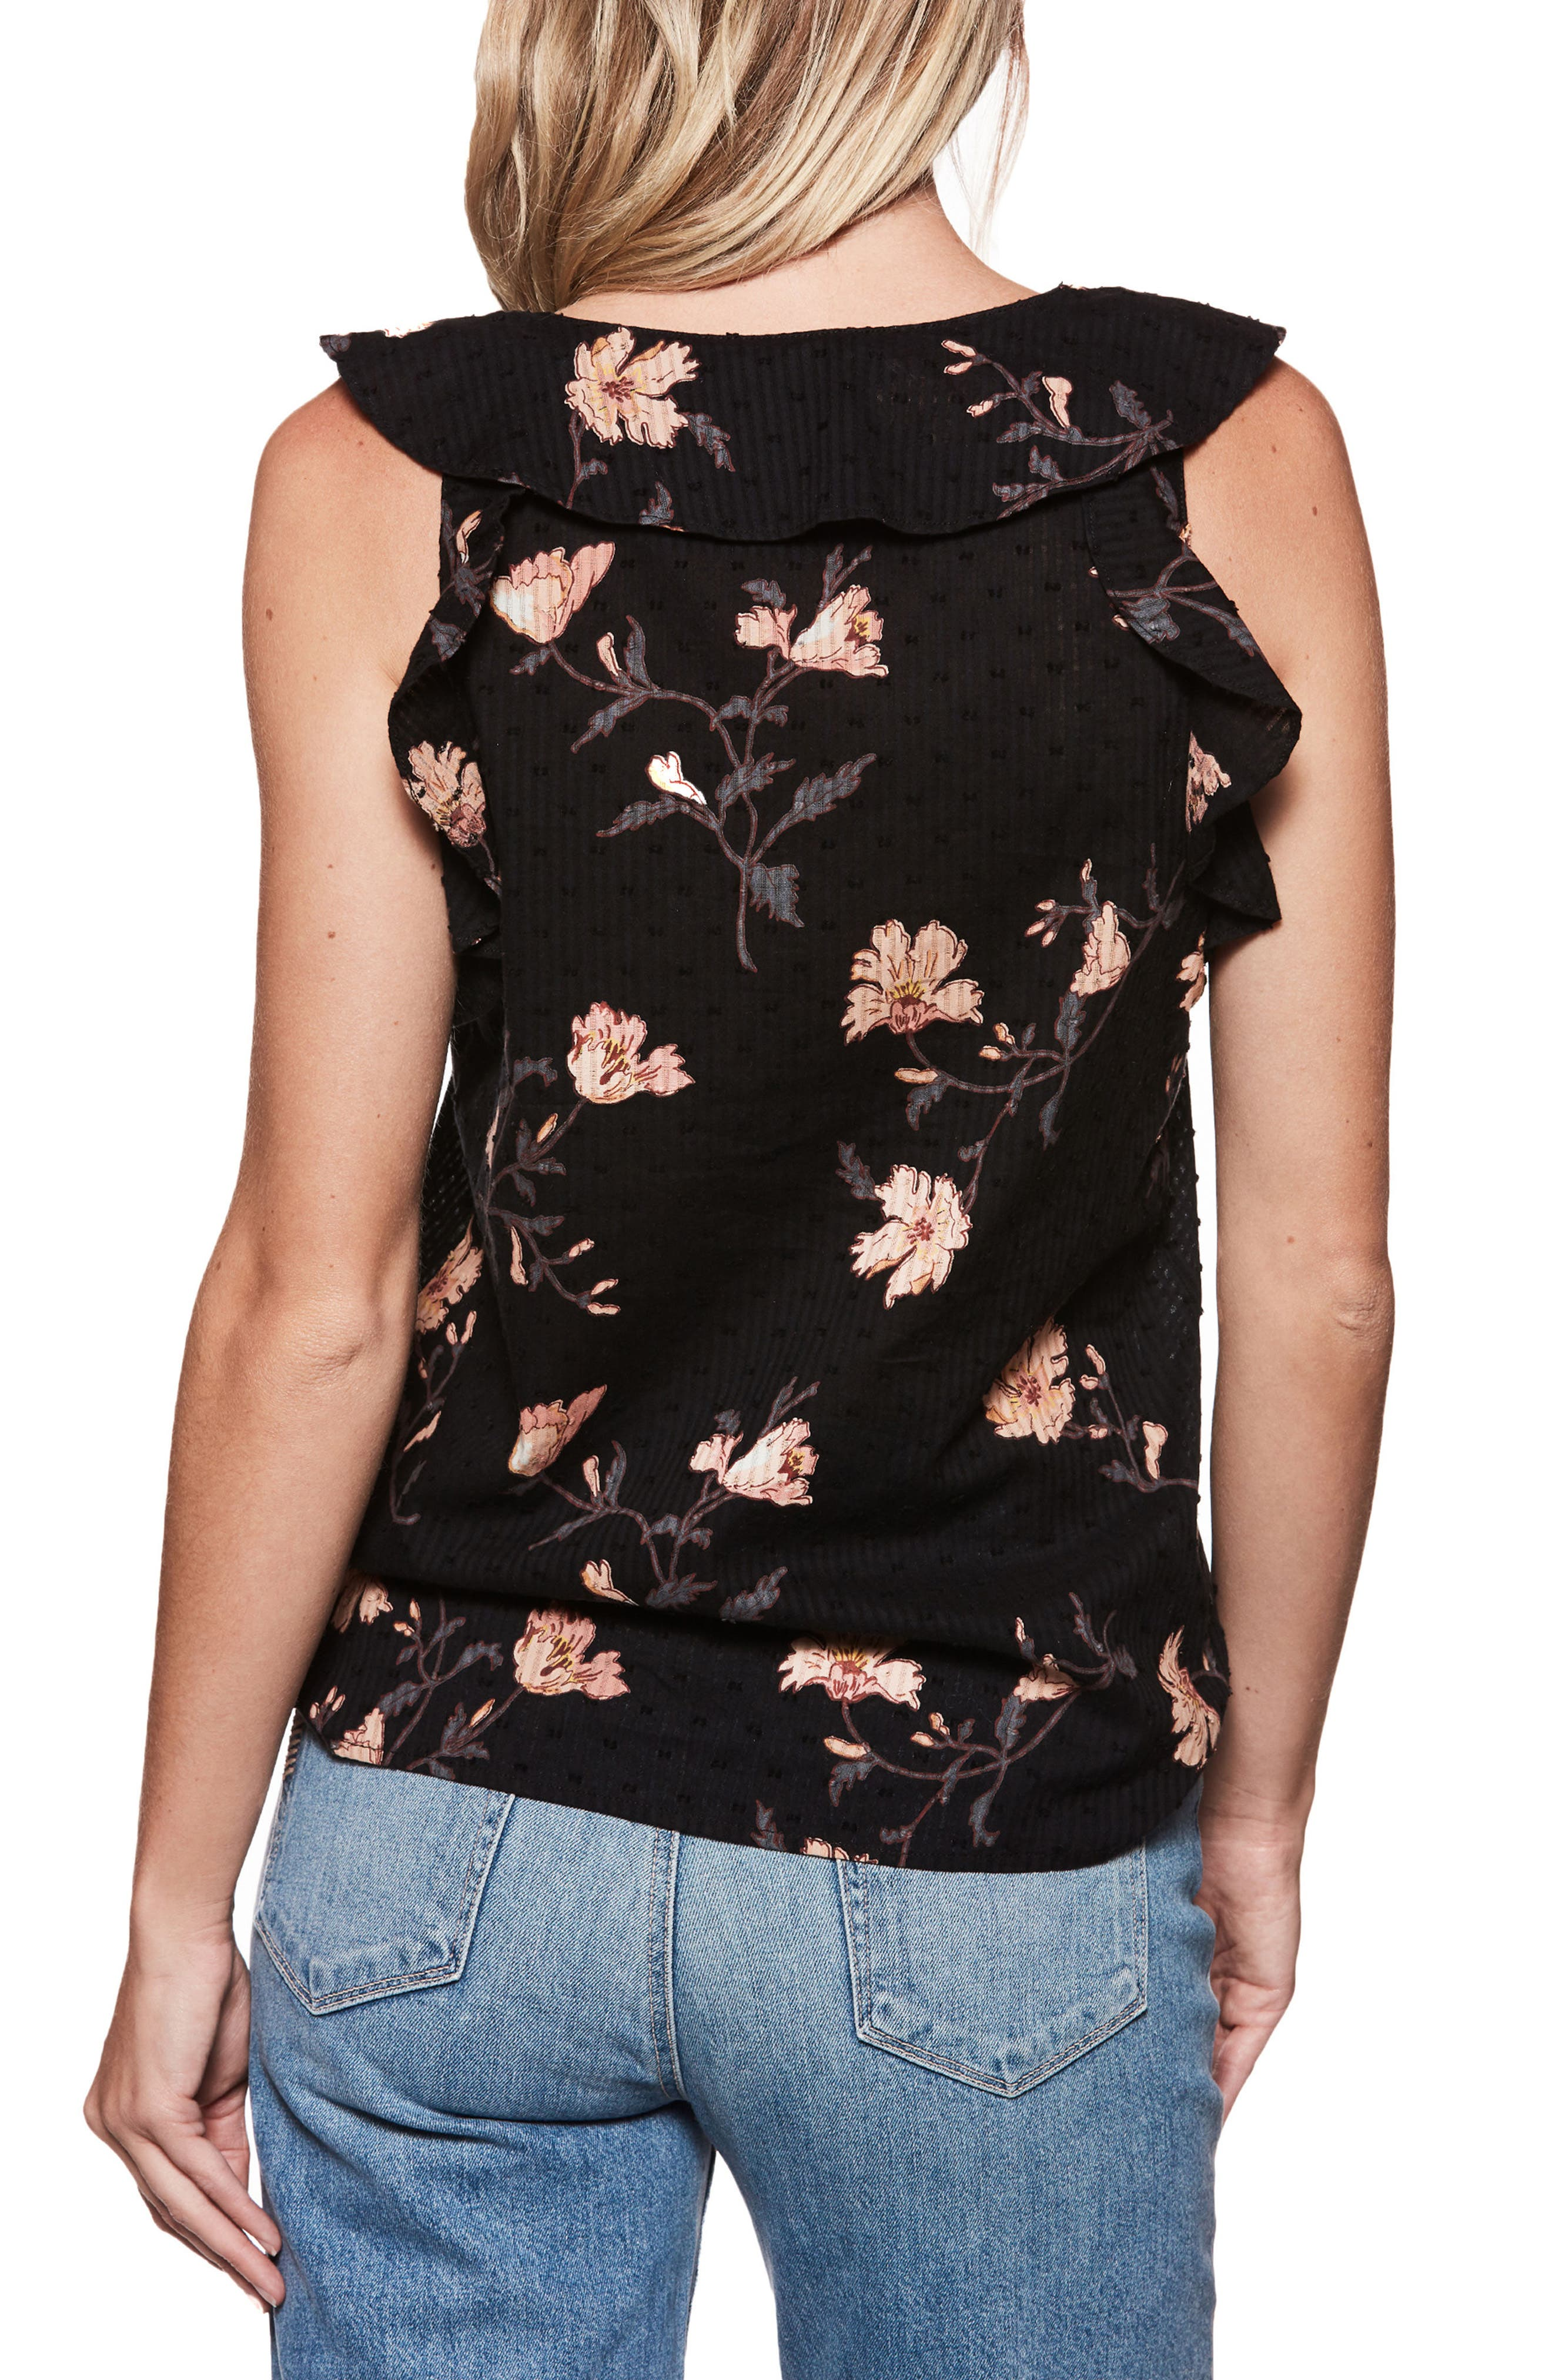 Farfalla Floral Print Ruffle Sleeveless Top,                             Alternate thumbnail 2, color,                             Black / Desert Sunrise